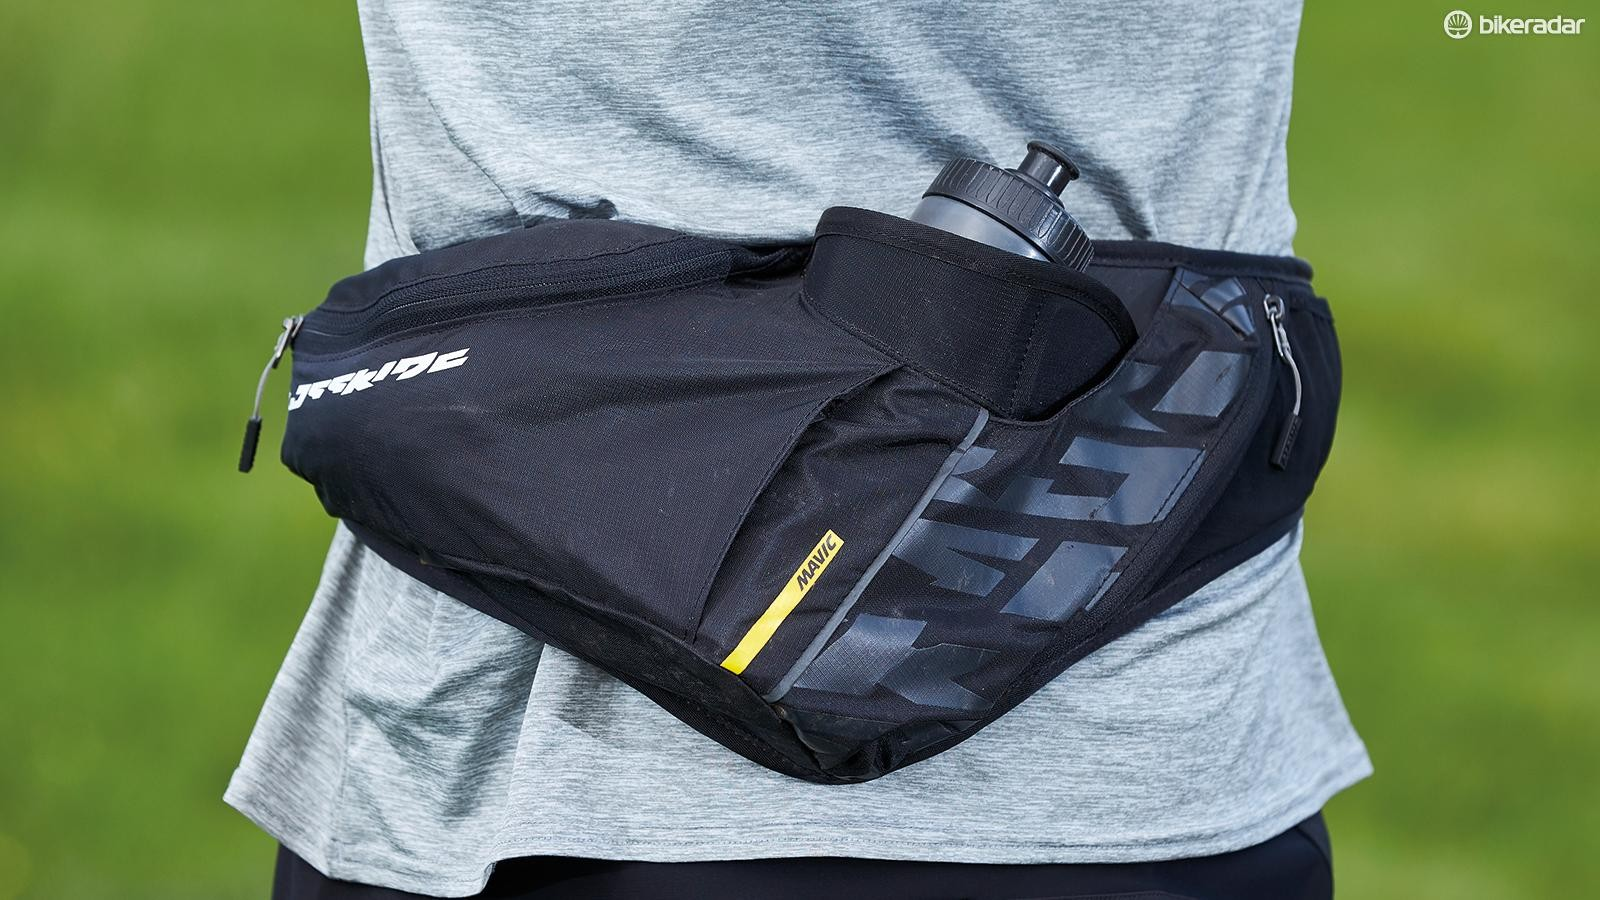 The Mavic Crossride bumbag has just enough carrying capacity for rides of a few hours